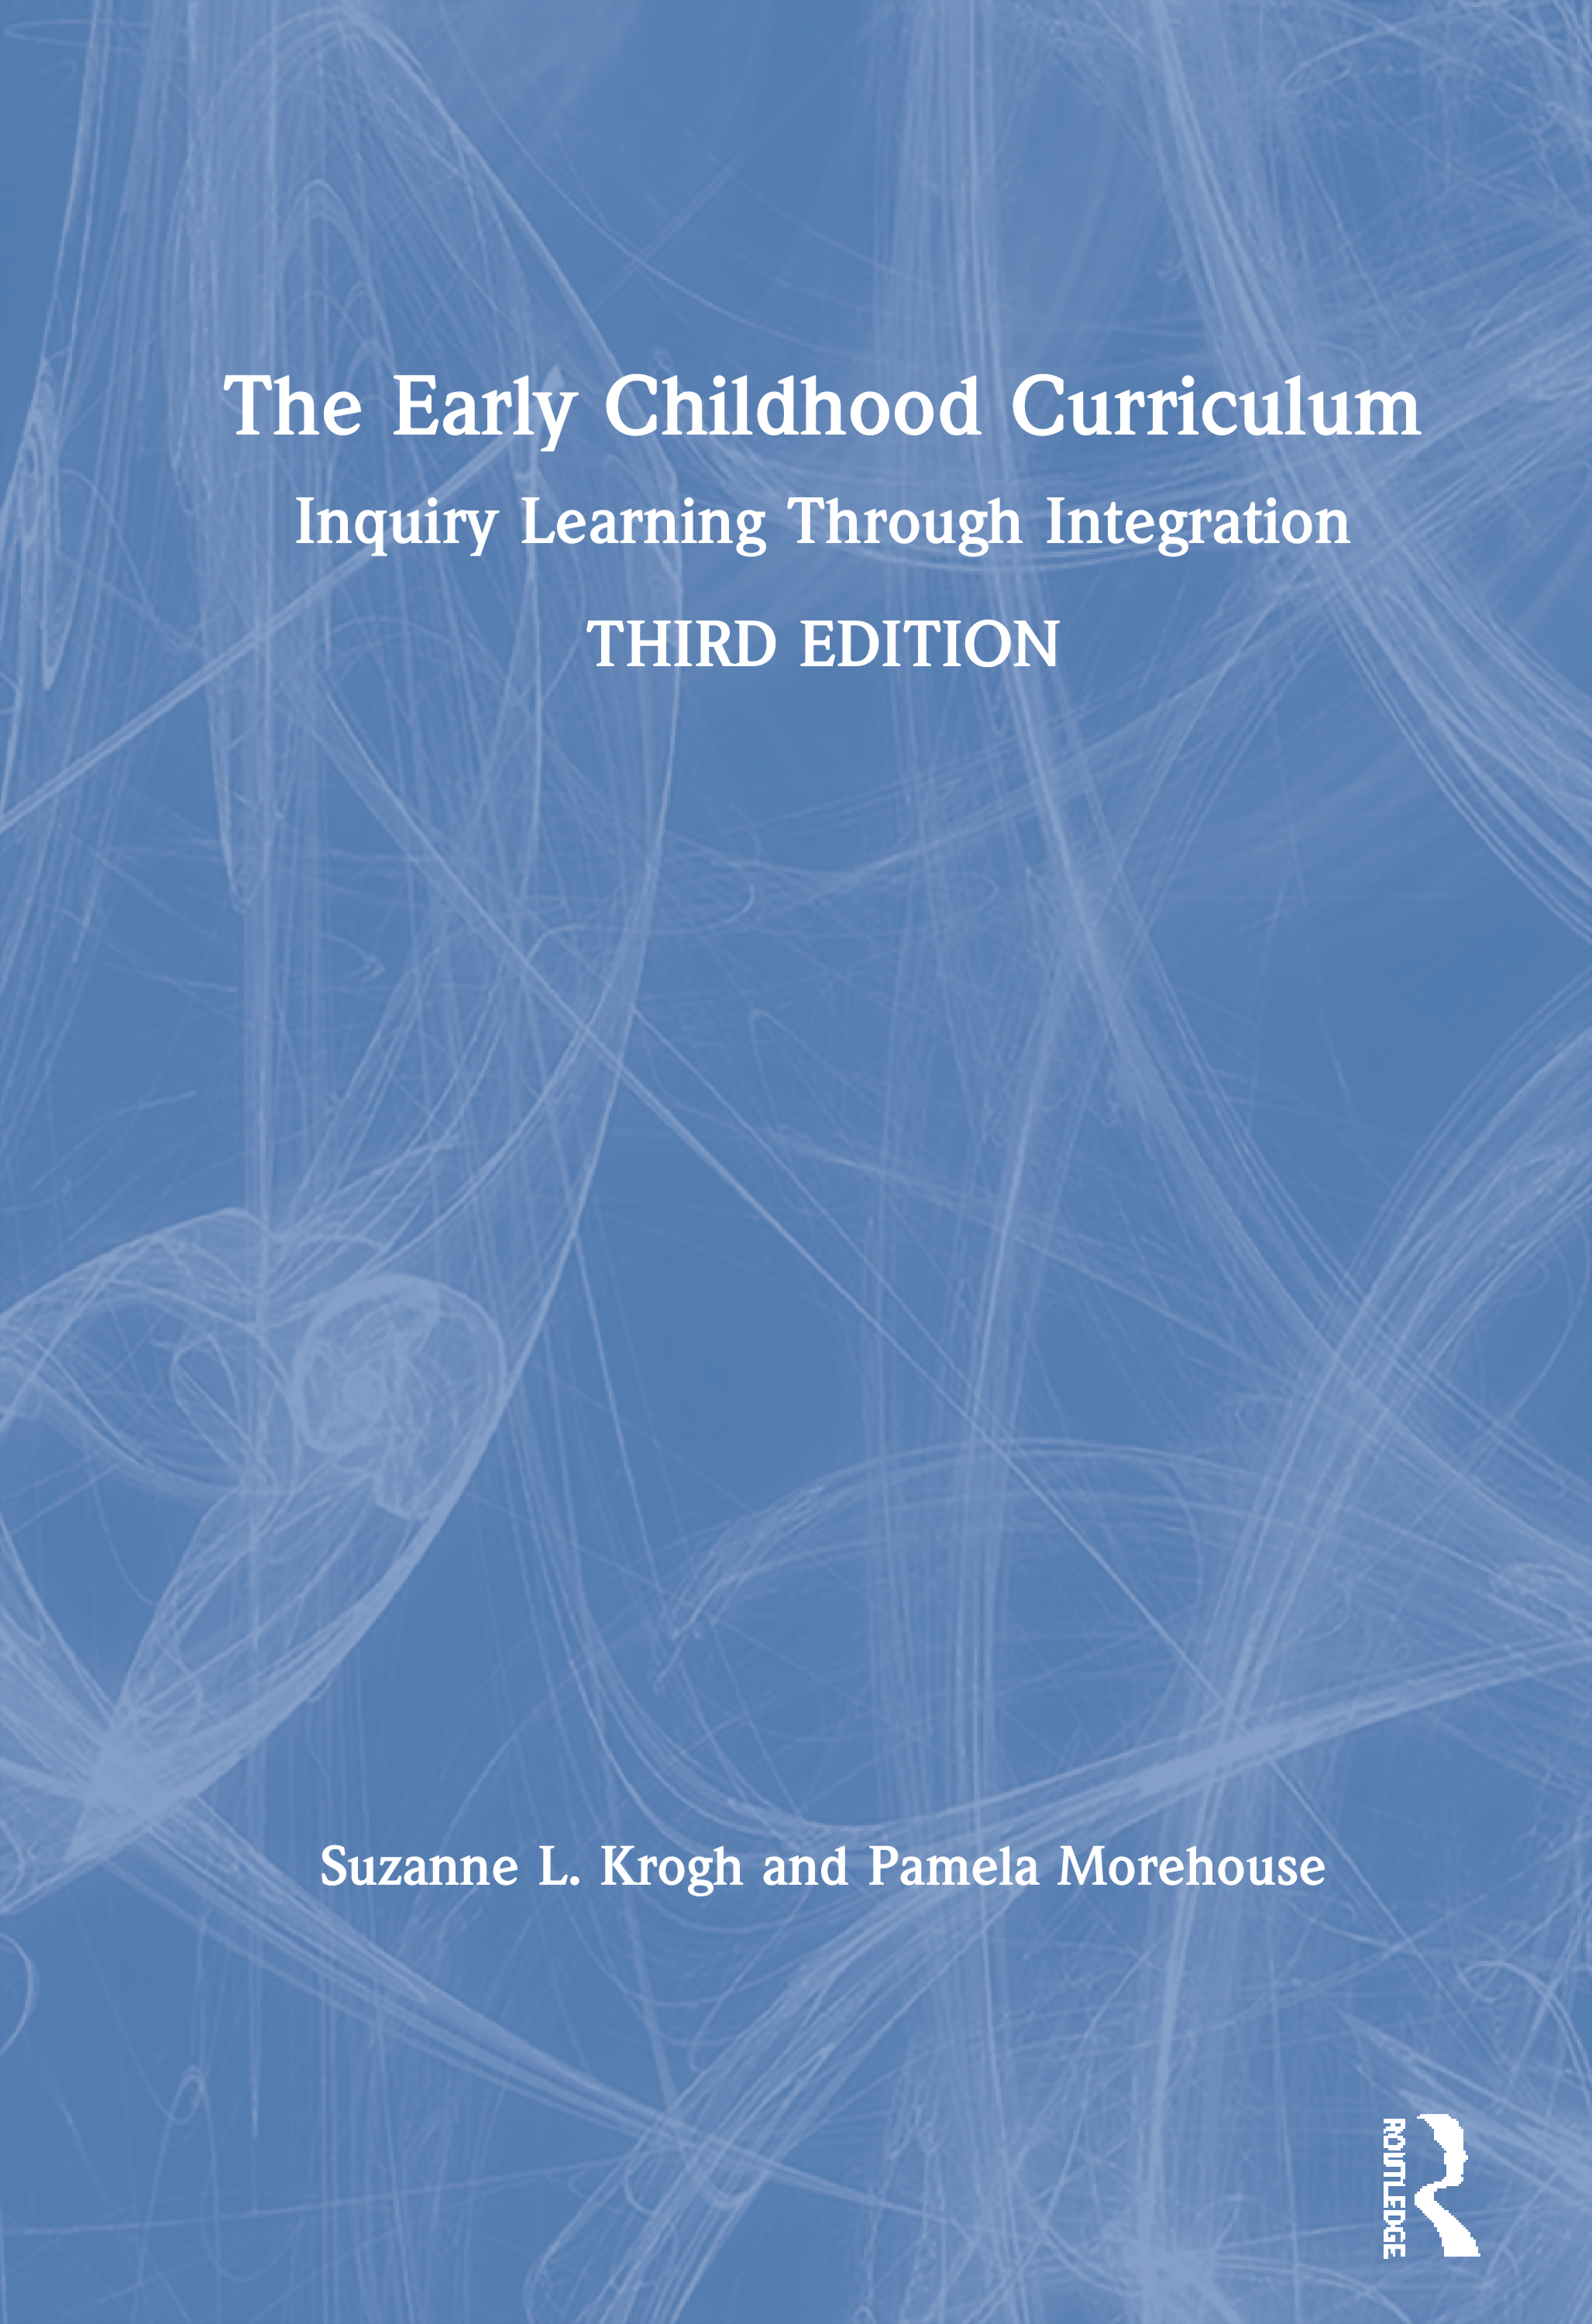 The Early Childhood Curriculum: Inquiry Learning Through Integration book cover